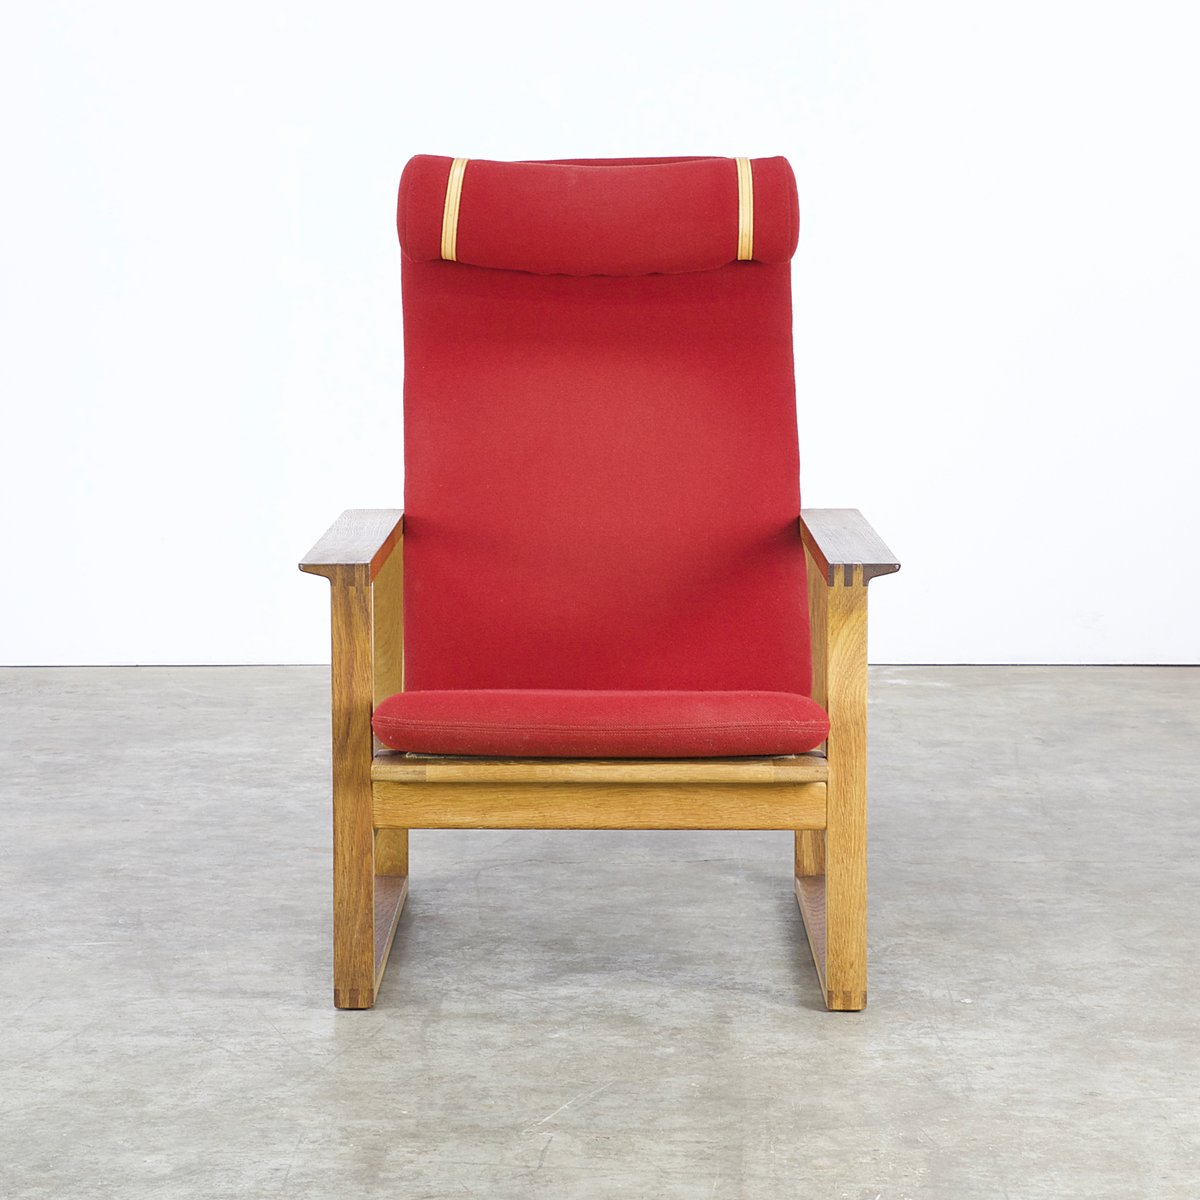 red lounge chair adirondack chairs target australia by borge mogensen for fredericia